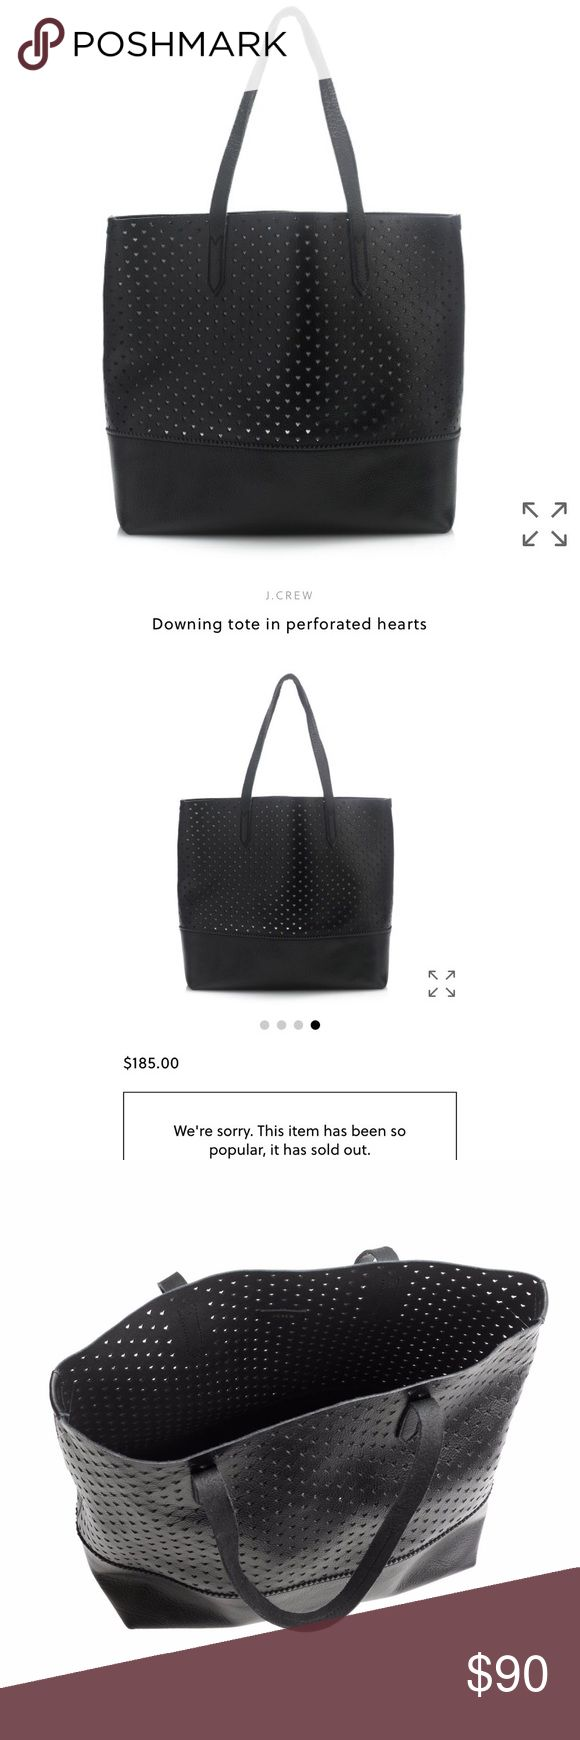 "J.Crew Black Downing Leather Perforated Tote J.Crew Downing Leather Tote in Perforated Hearts Black. Only used a few times, sold out everywhere and bought from J.Crew online for $185. I have too many black totes and so i decided it was time to sell. Comes with a removable little coin pouch as well.  **selling cheaper on merc!   Perfect to carry it everywhere —and can be your work bag, errands bag, gym bag and going-out bag  100% Leather. 9"" handle drop. 13 1/2""H x 13 1/2""W x 6 1/4""D. J. Crew…"